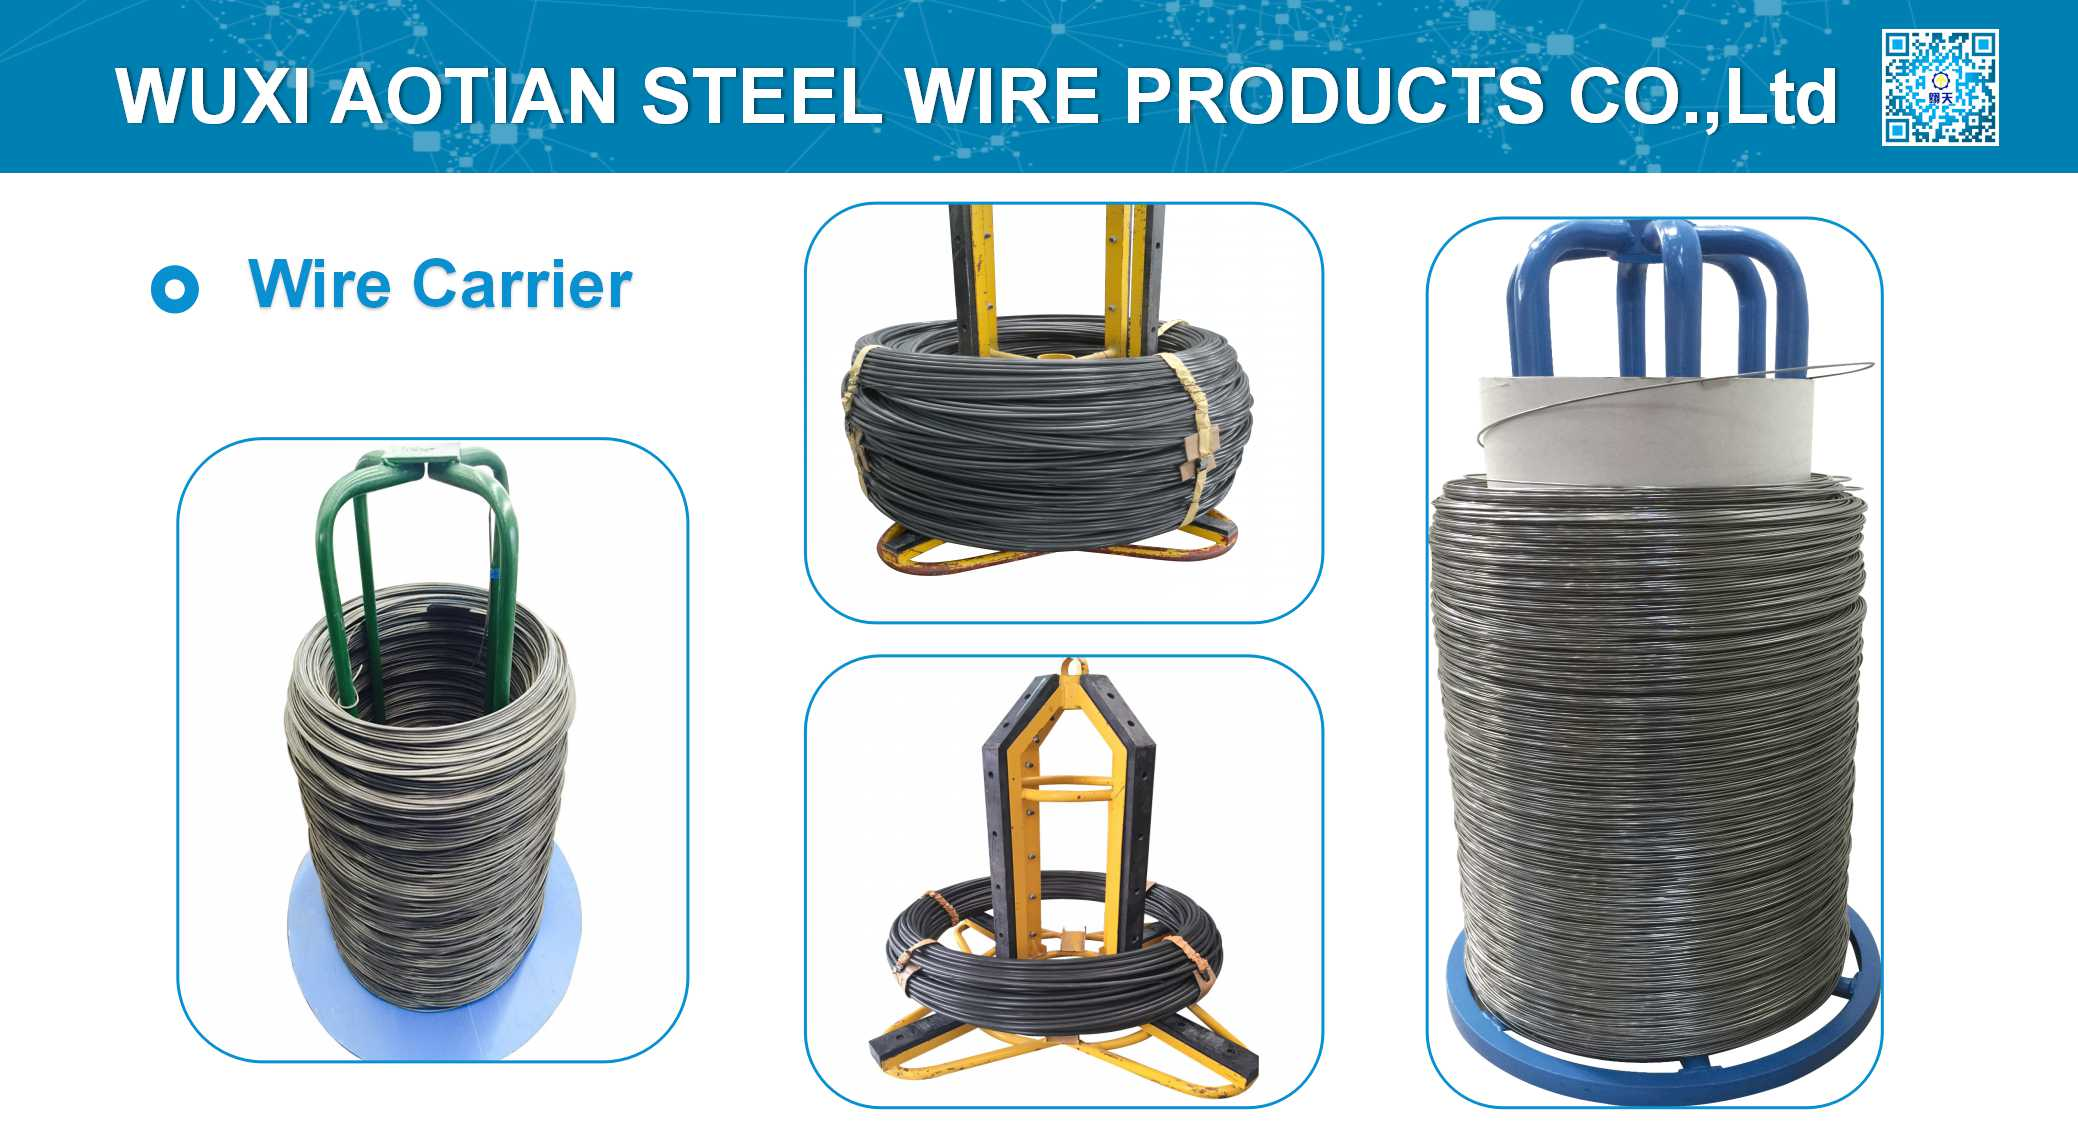 Wire carrier packing